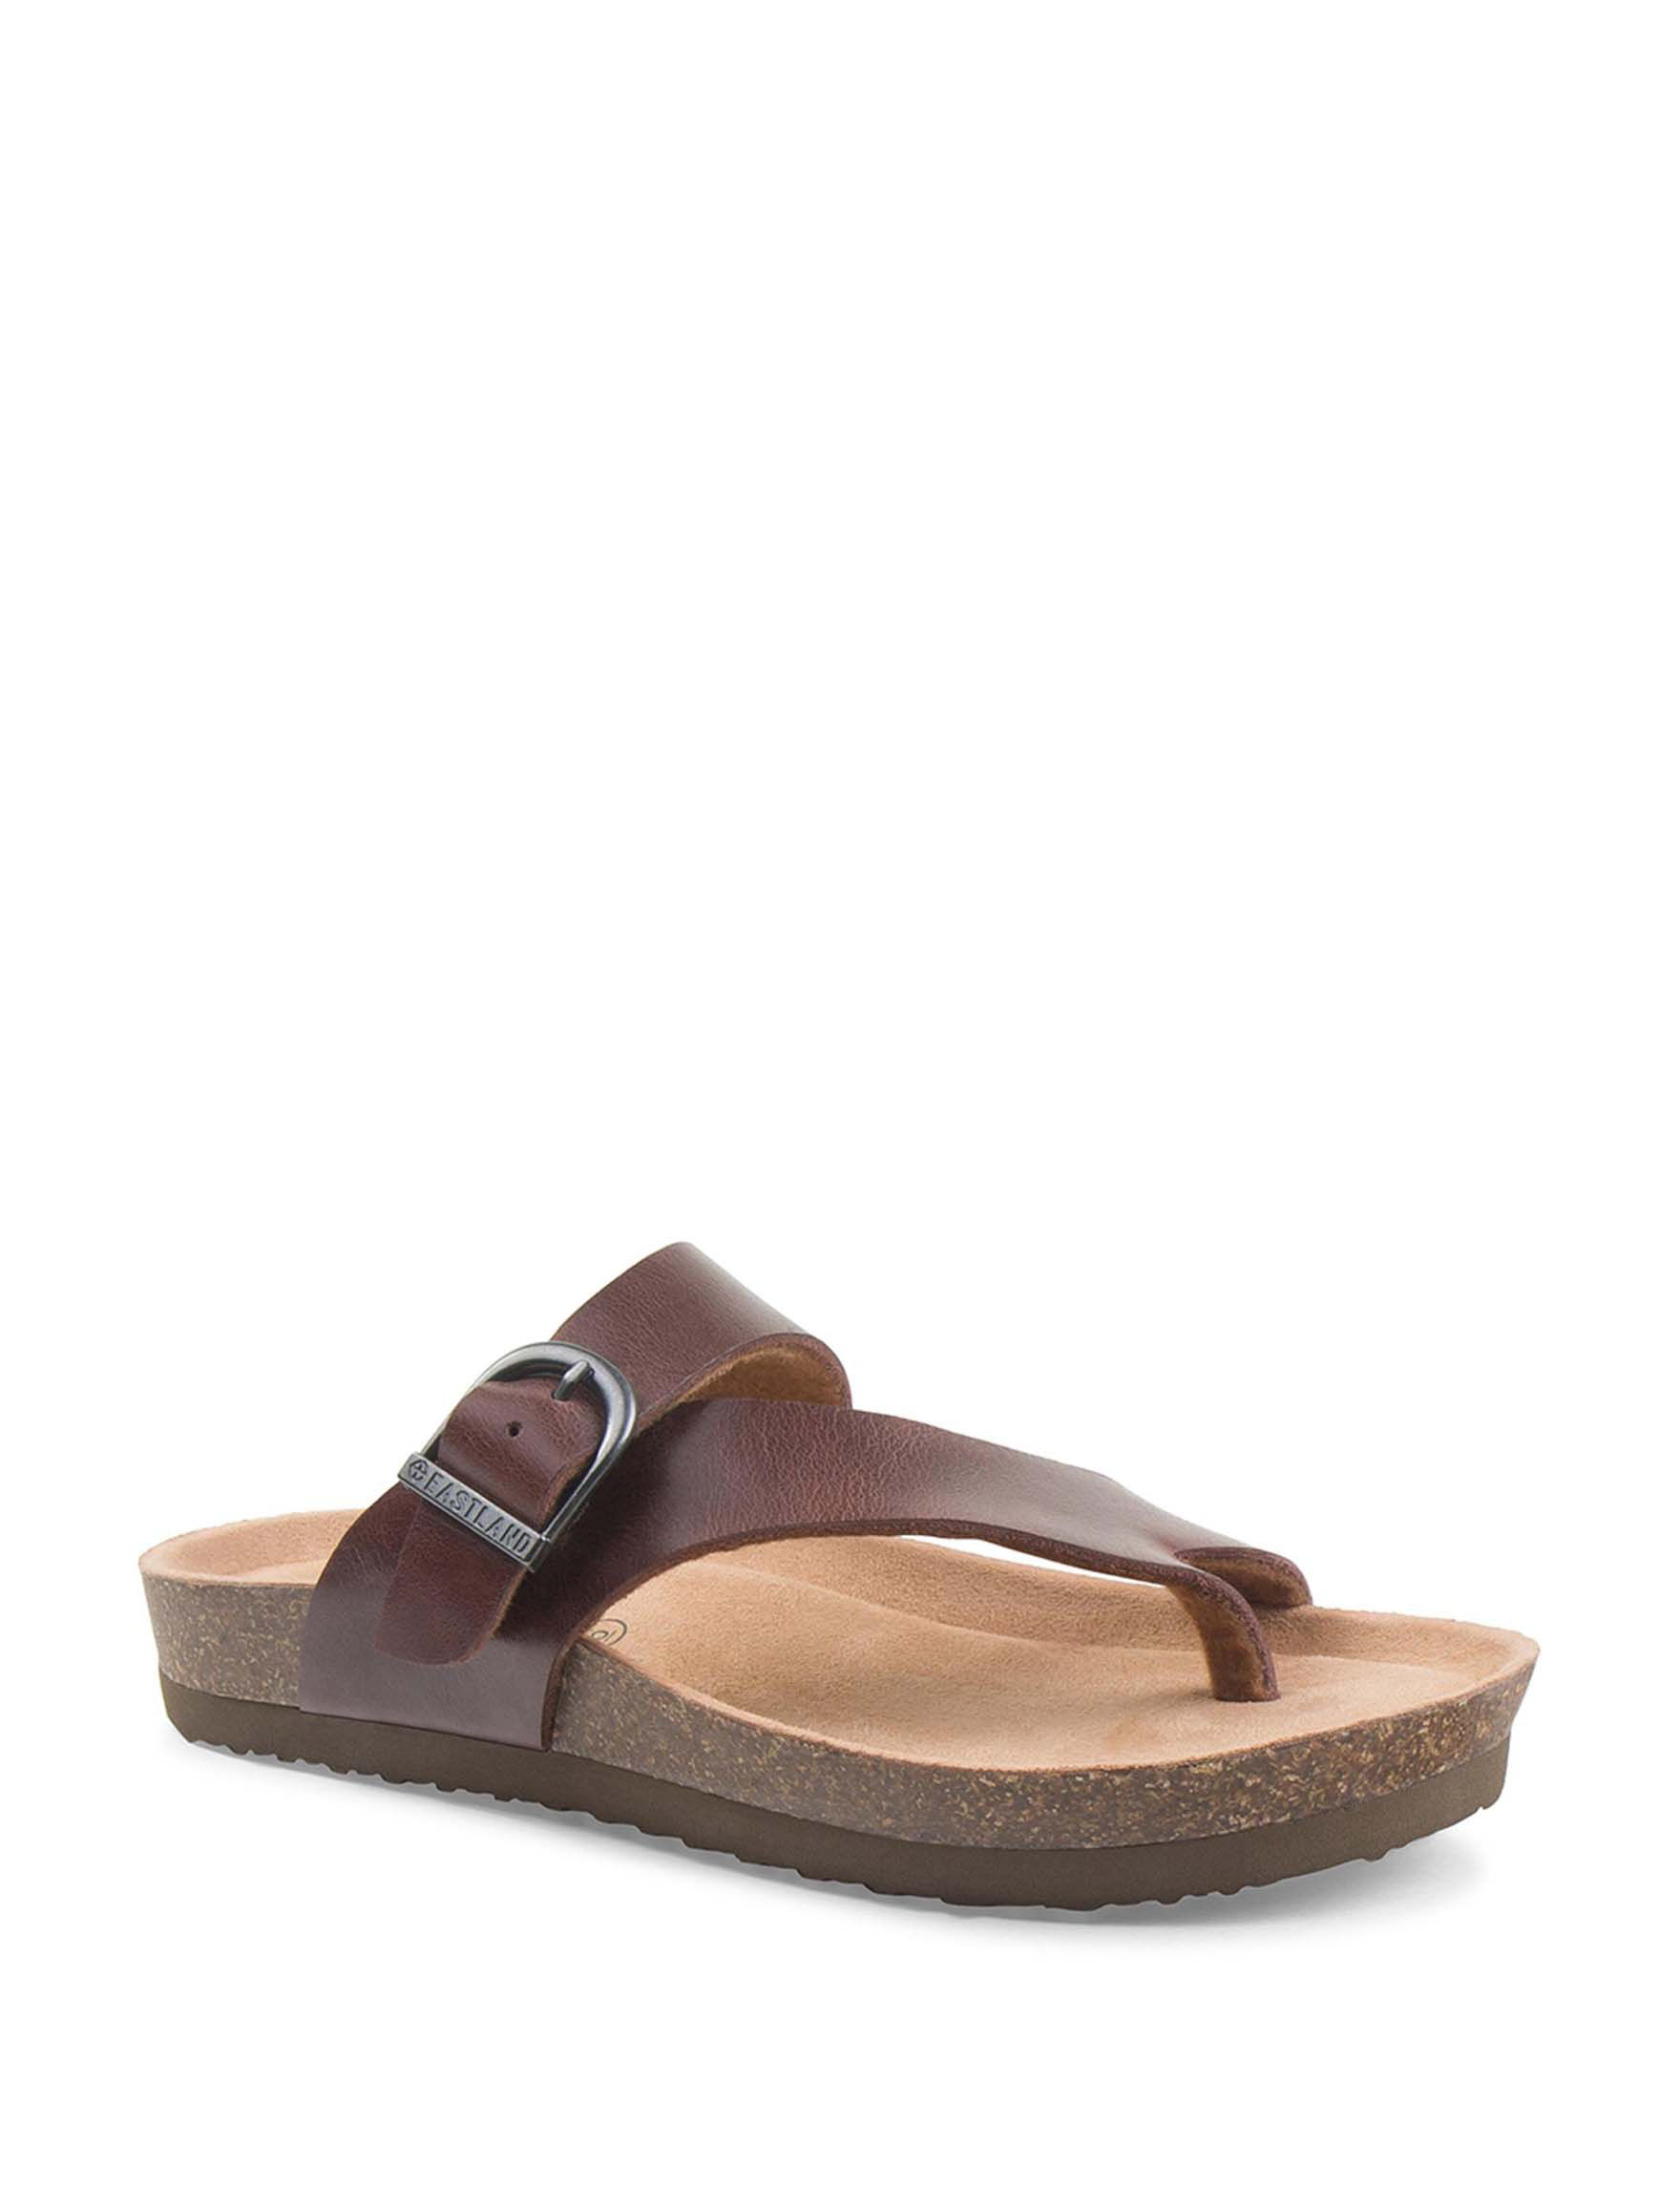 Eastland Walnut Flat Sandals Slide Sandals